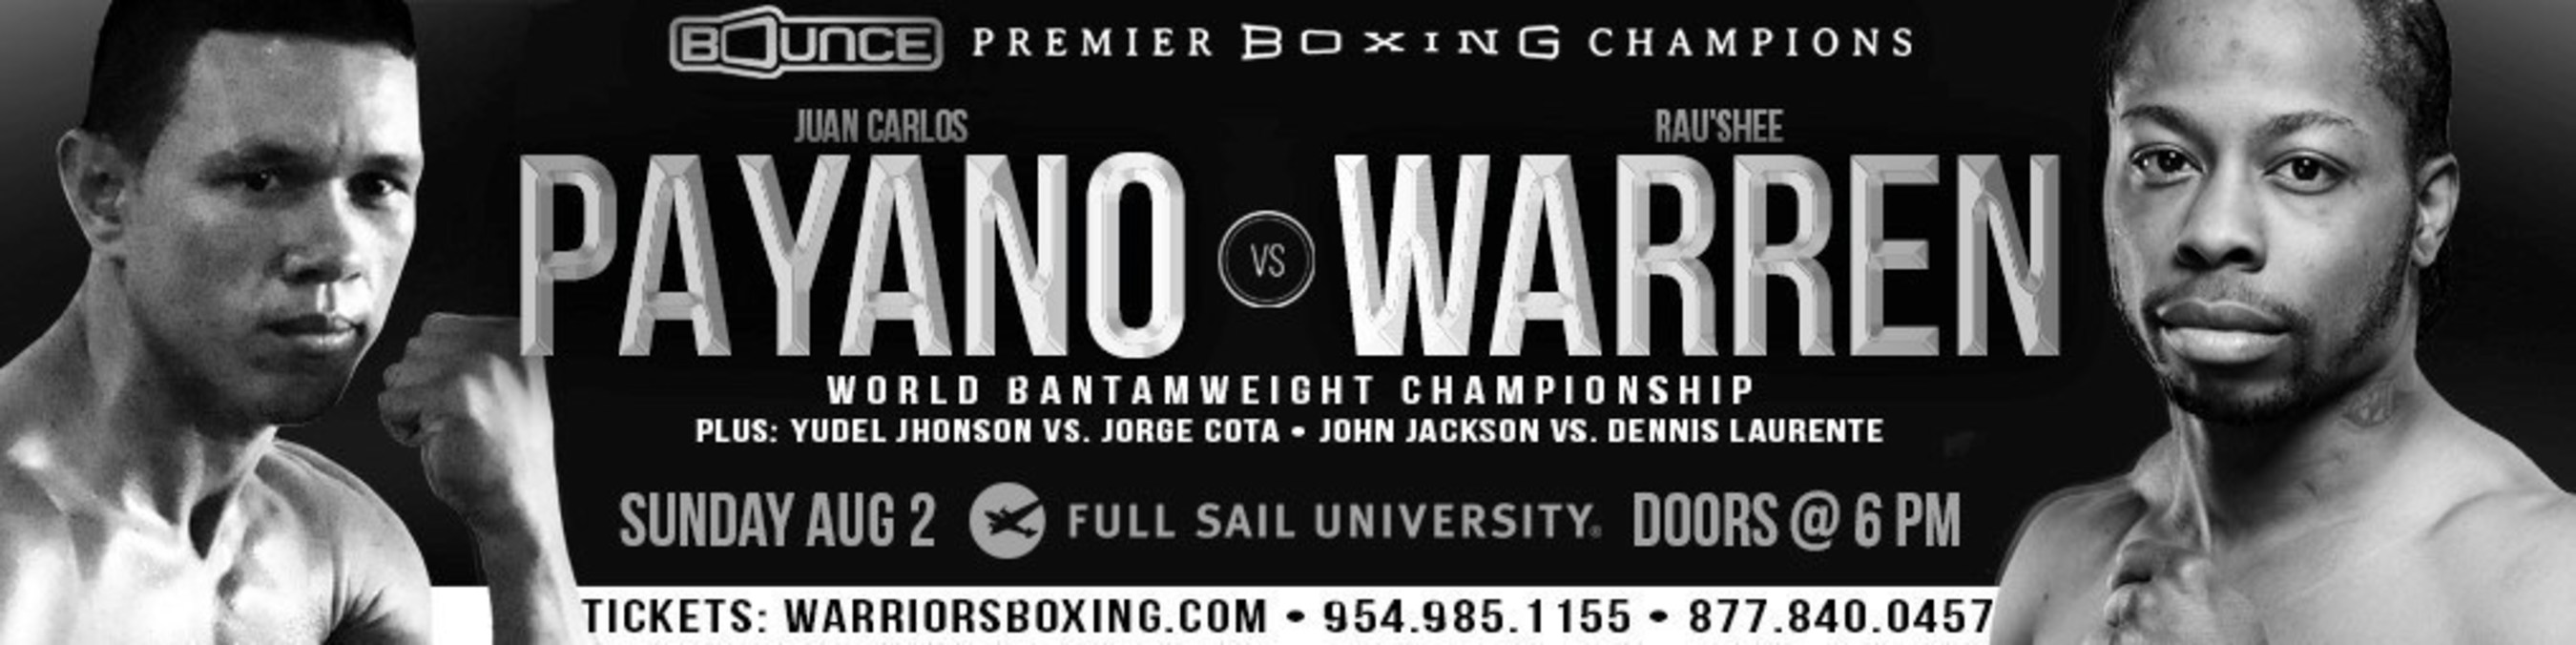 Premier Boxing Champions comes to Bounce TV on Sunday, August 2 at 9:00 p.m. (ET), with the debut of the new monthly series PBC - The Next Round, which will showcase the sport's future stars and potential champions. The network will also stream the telecast live on BounceTV.com, which will also have local channel location for the network.